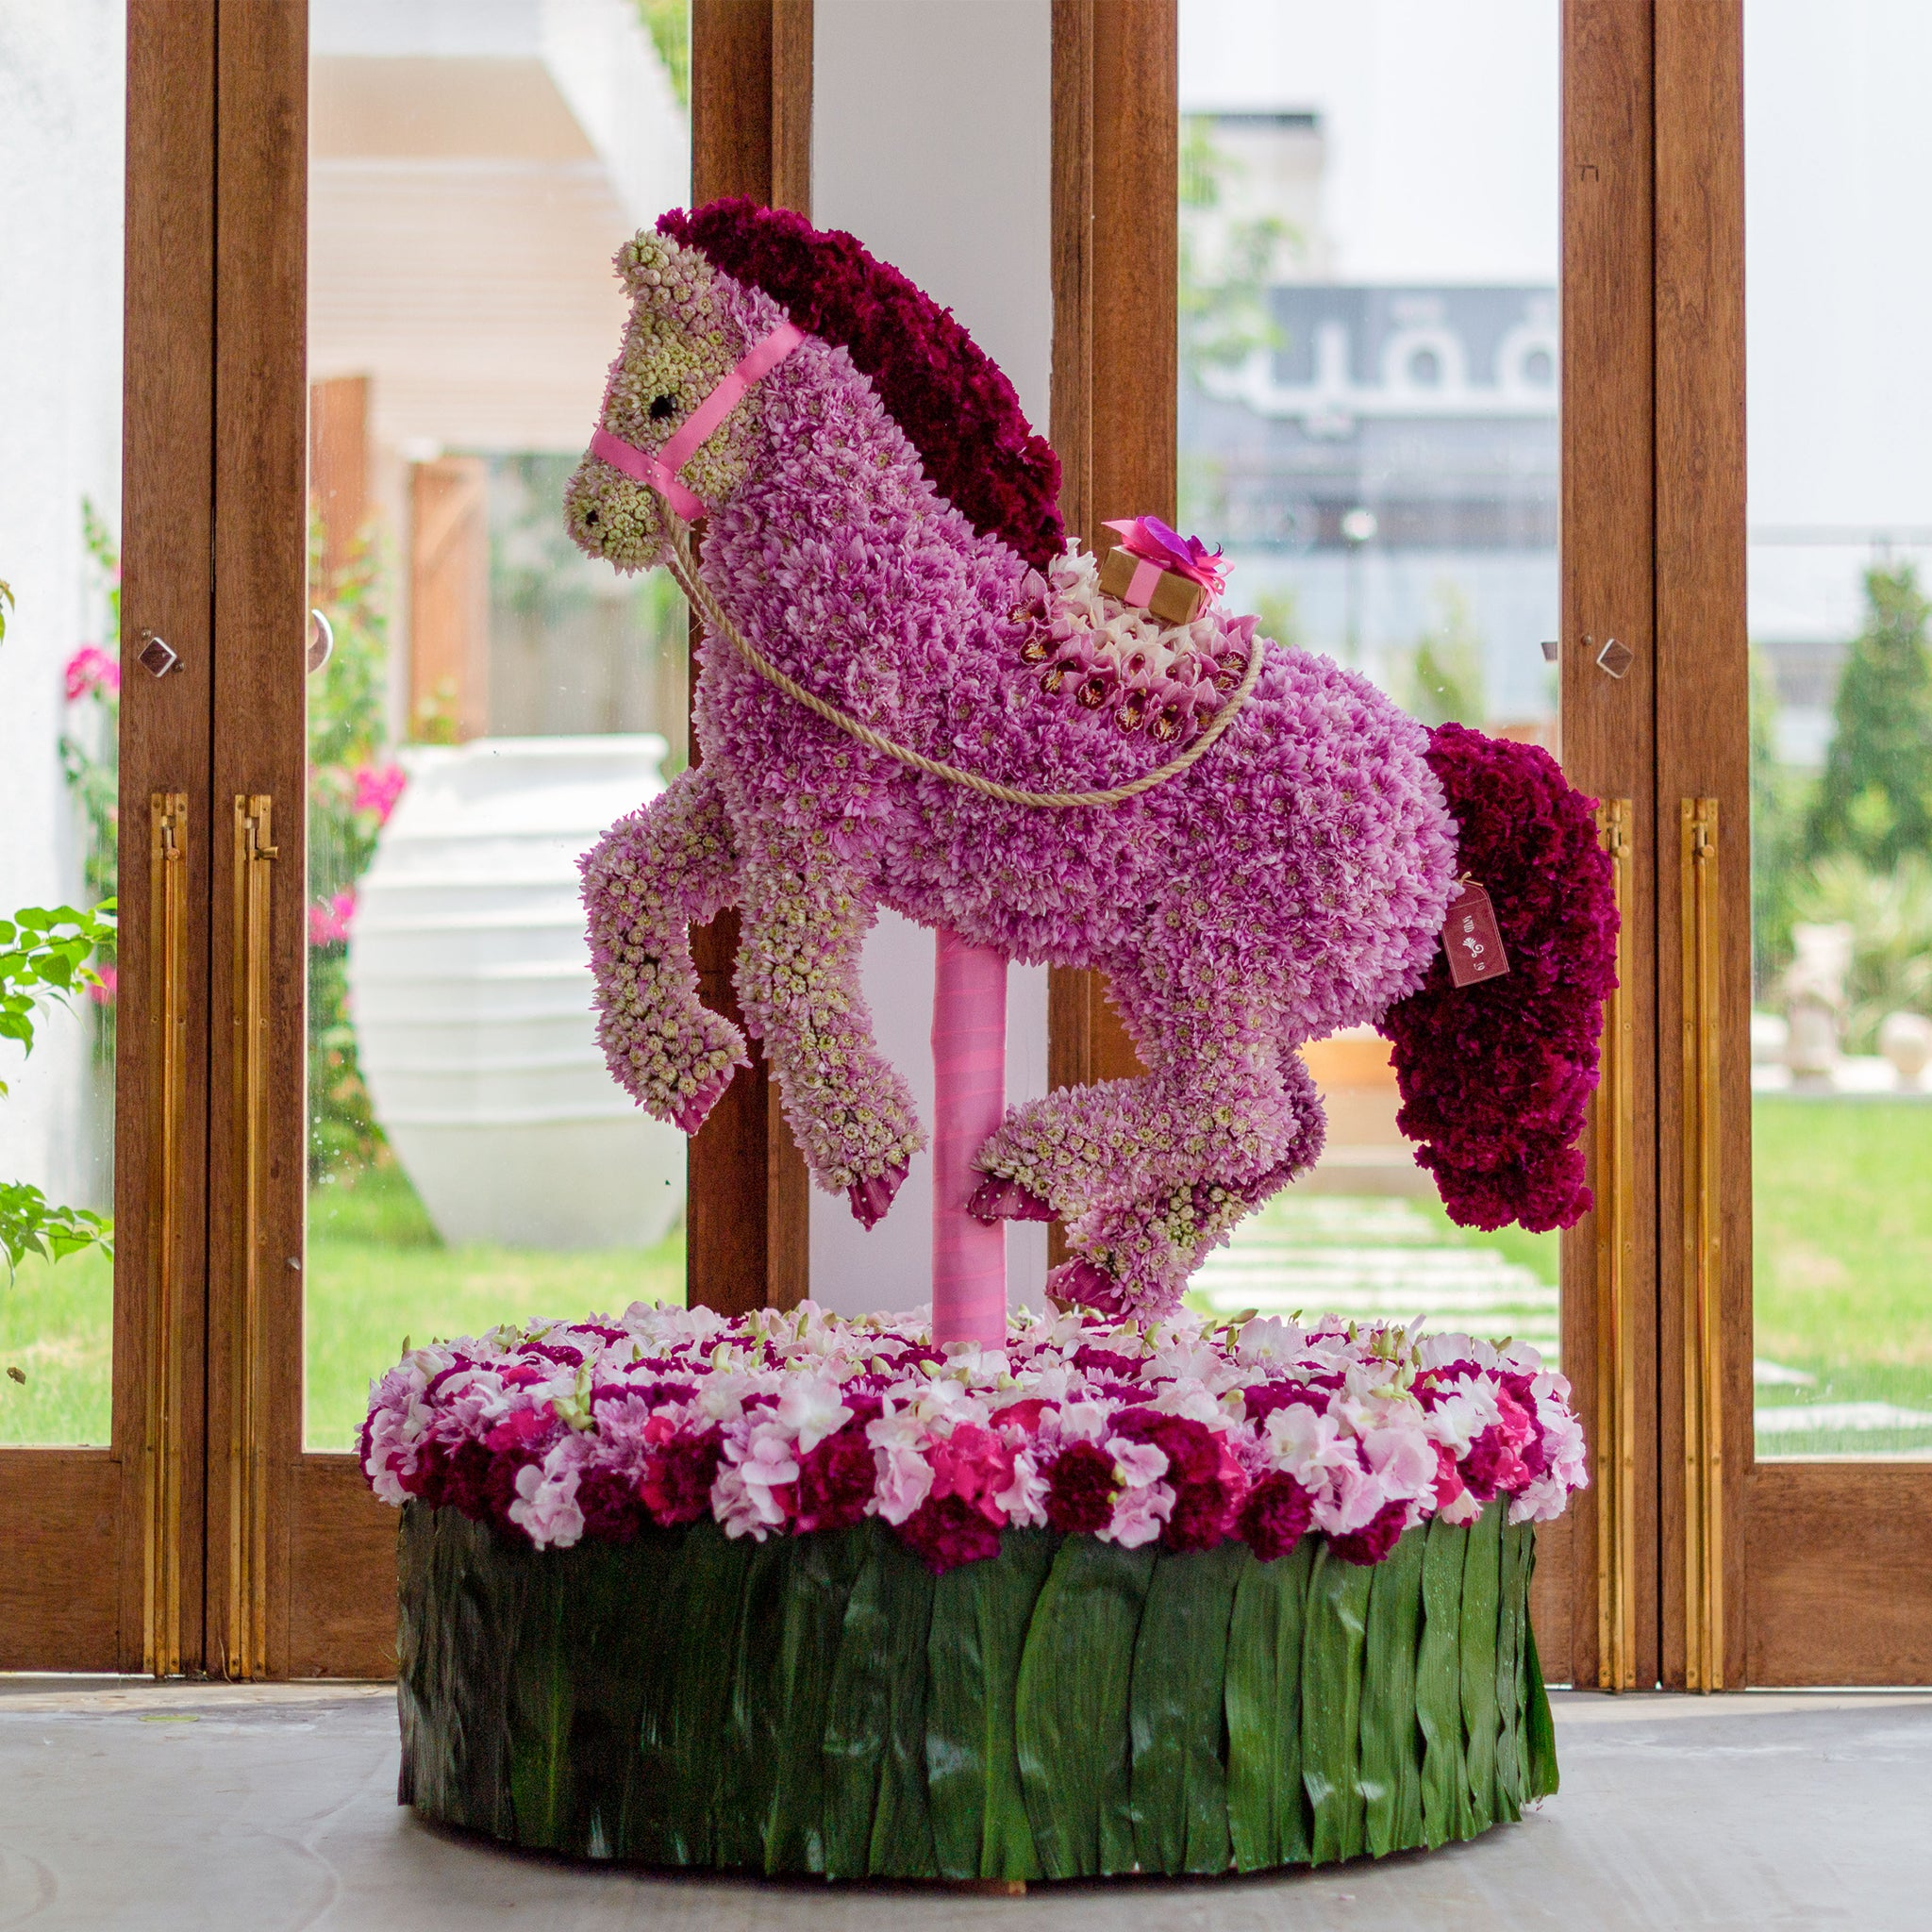 Pink Horse - Wudflowers